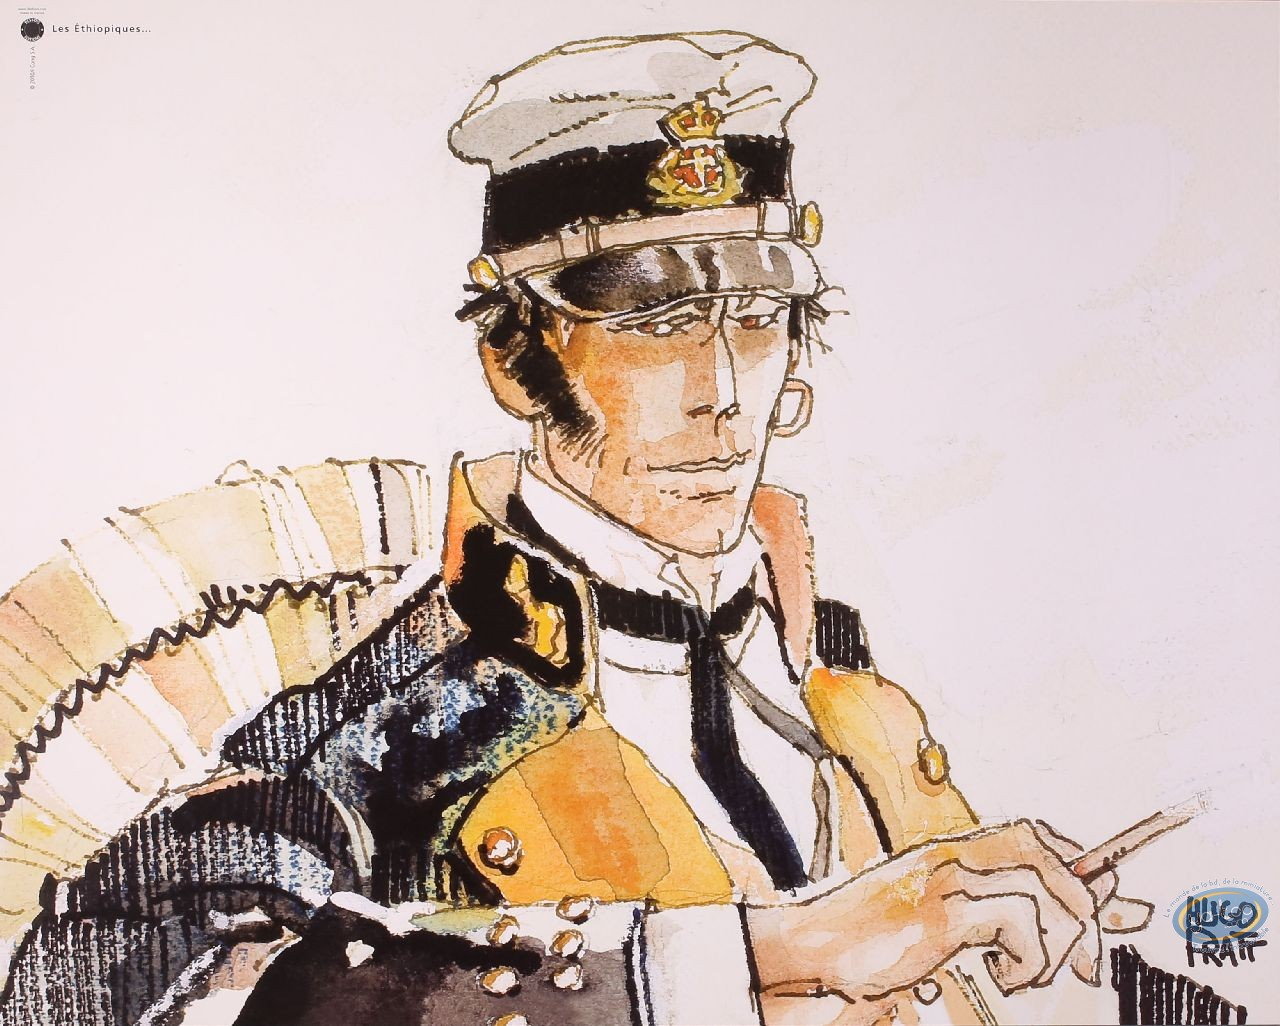 Offset Print, Corto Maltese : The Ethiopiques